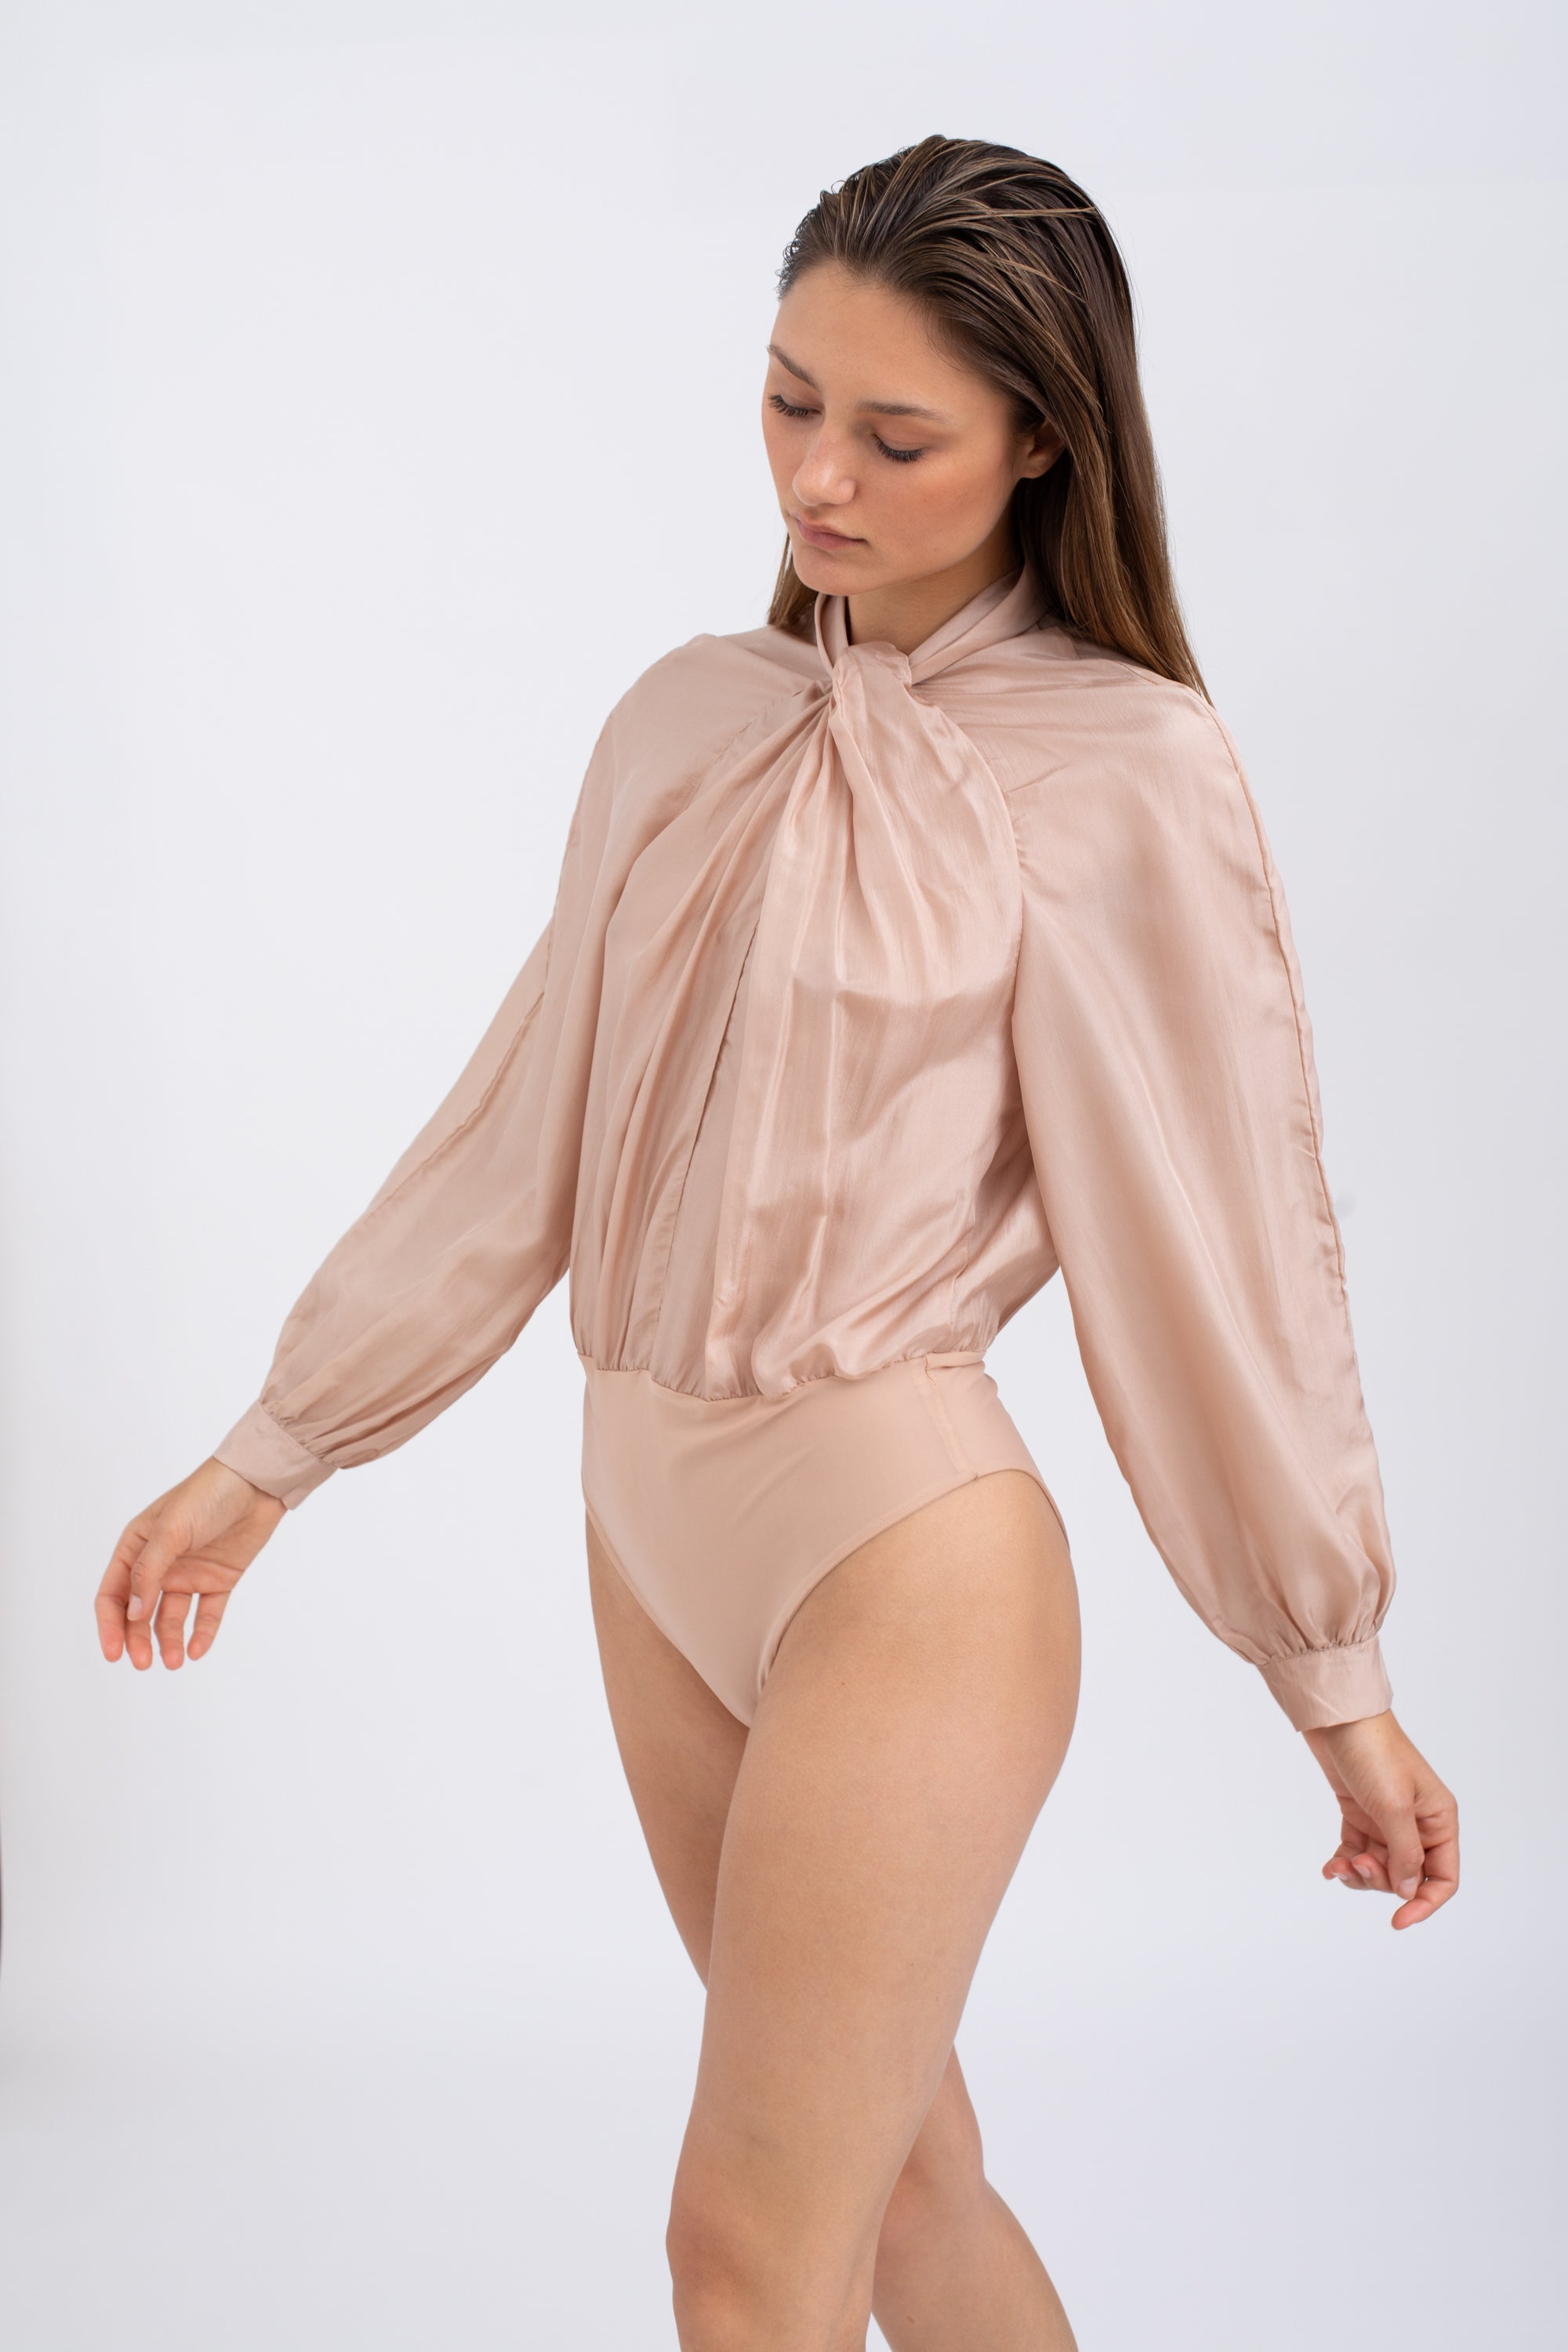 La Bohem - Silk bodysuit Blush color